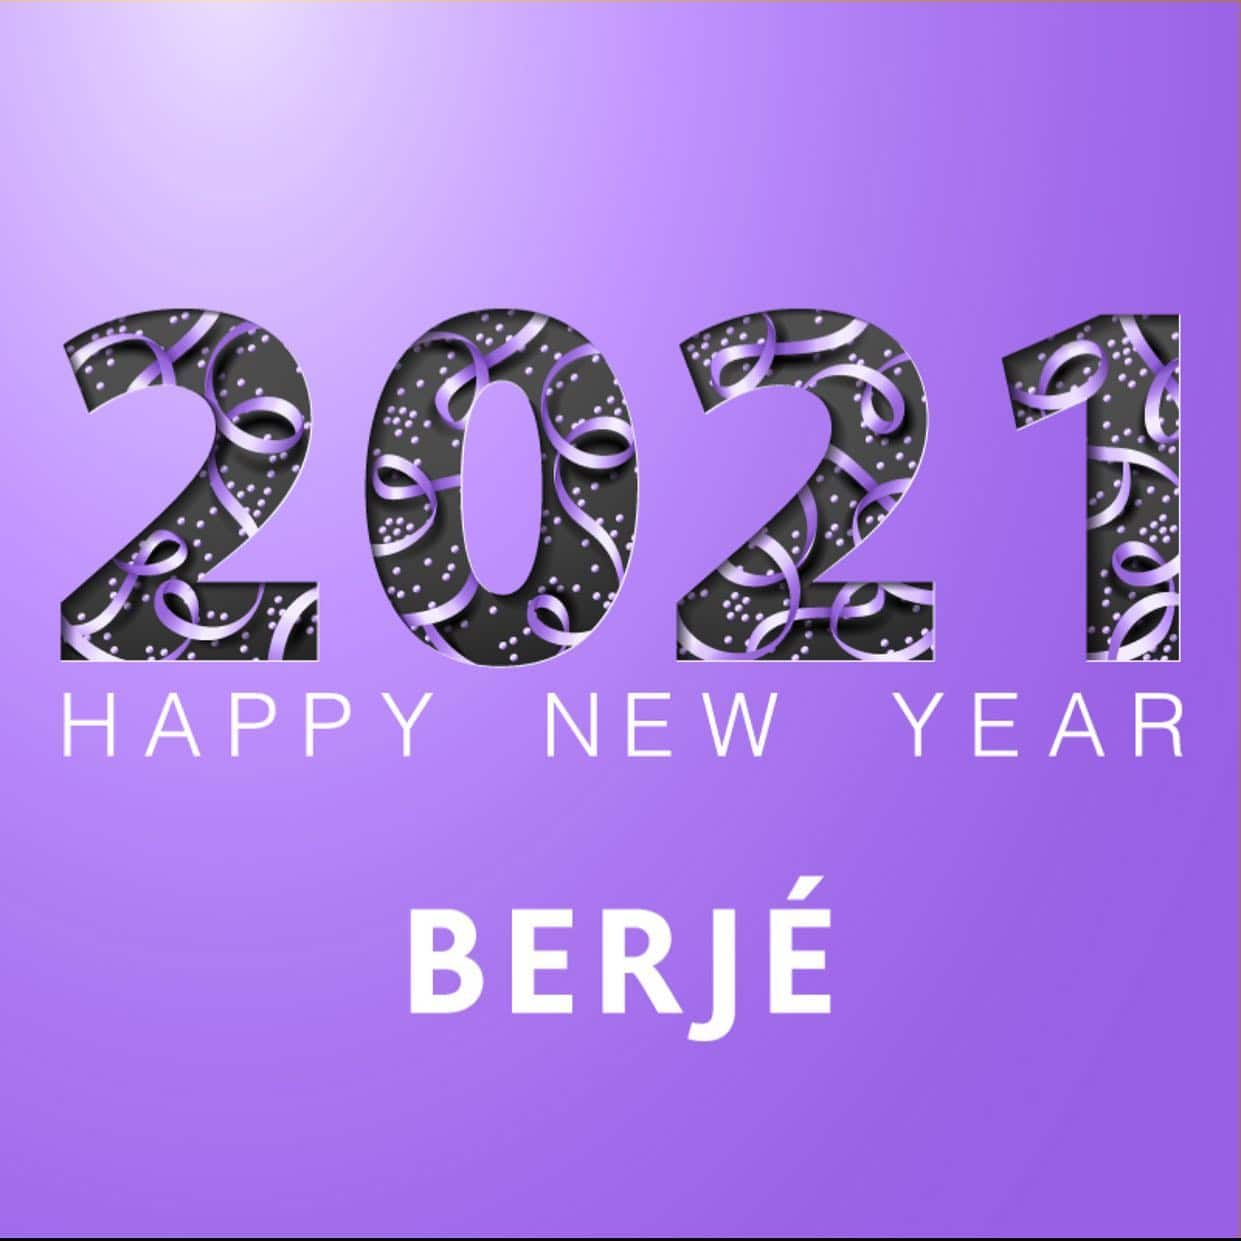 Happy new year to all! #teamberje